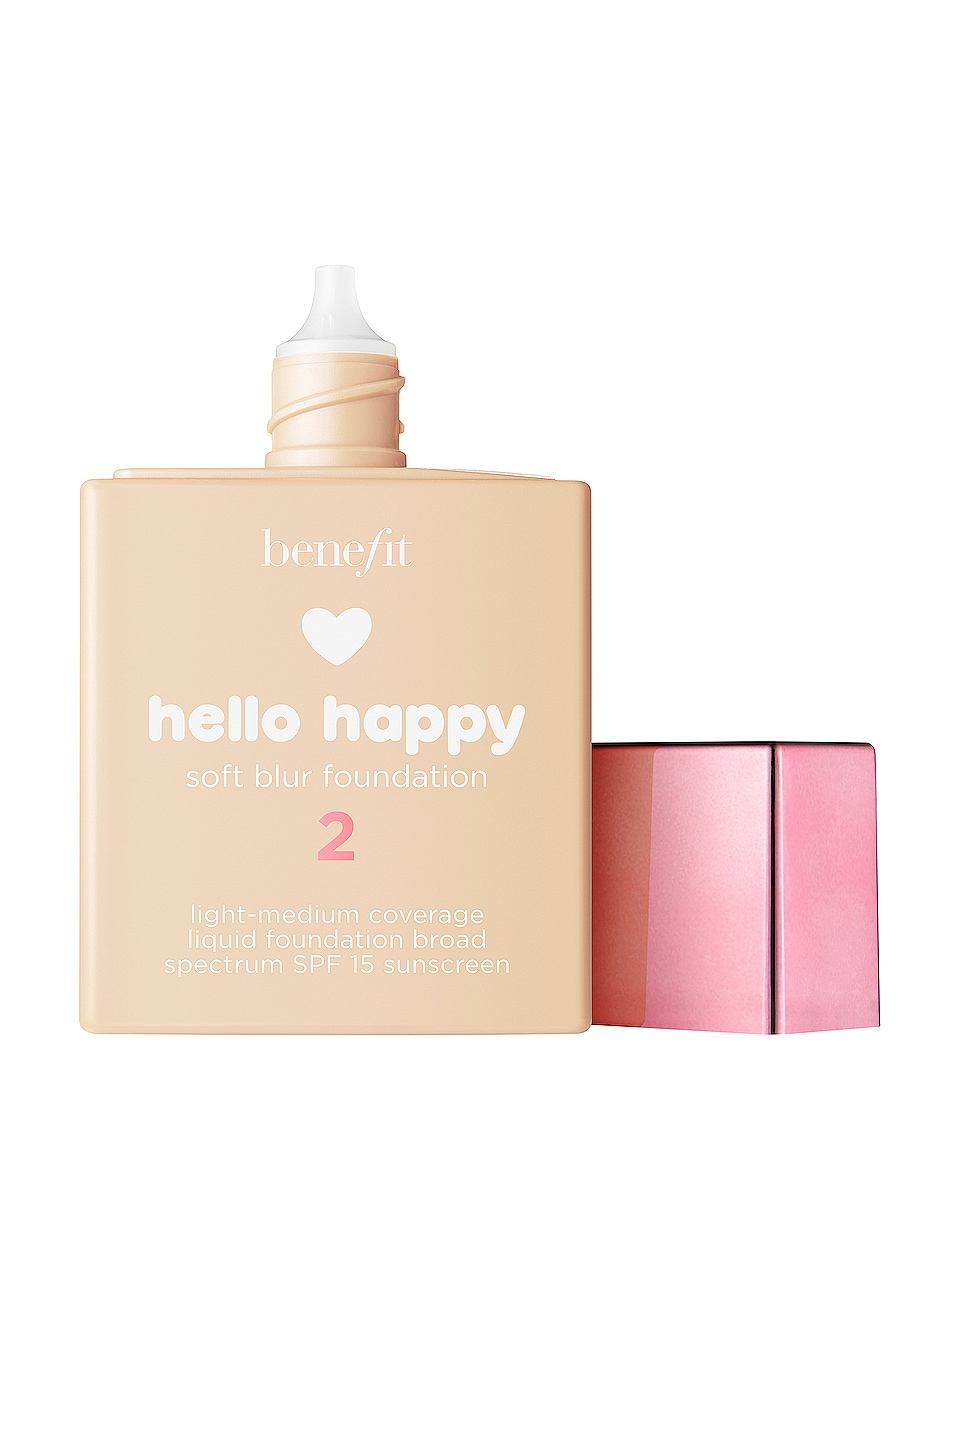 Benefit Cosmetics Hello Happy Soft Blur Foundation in Shade 02